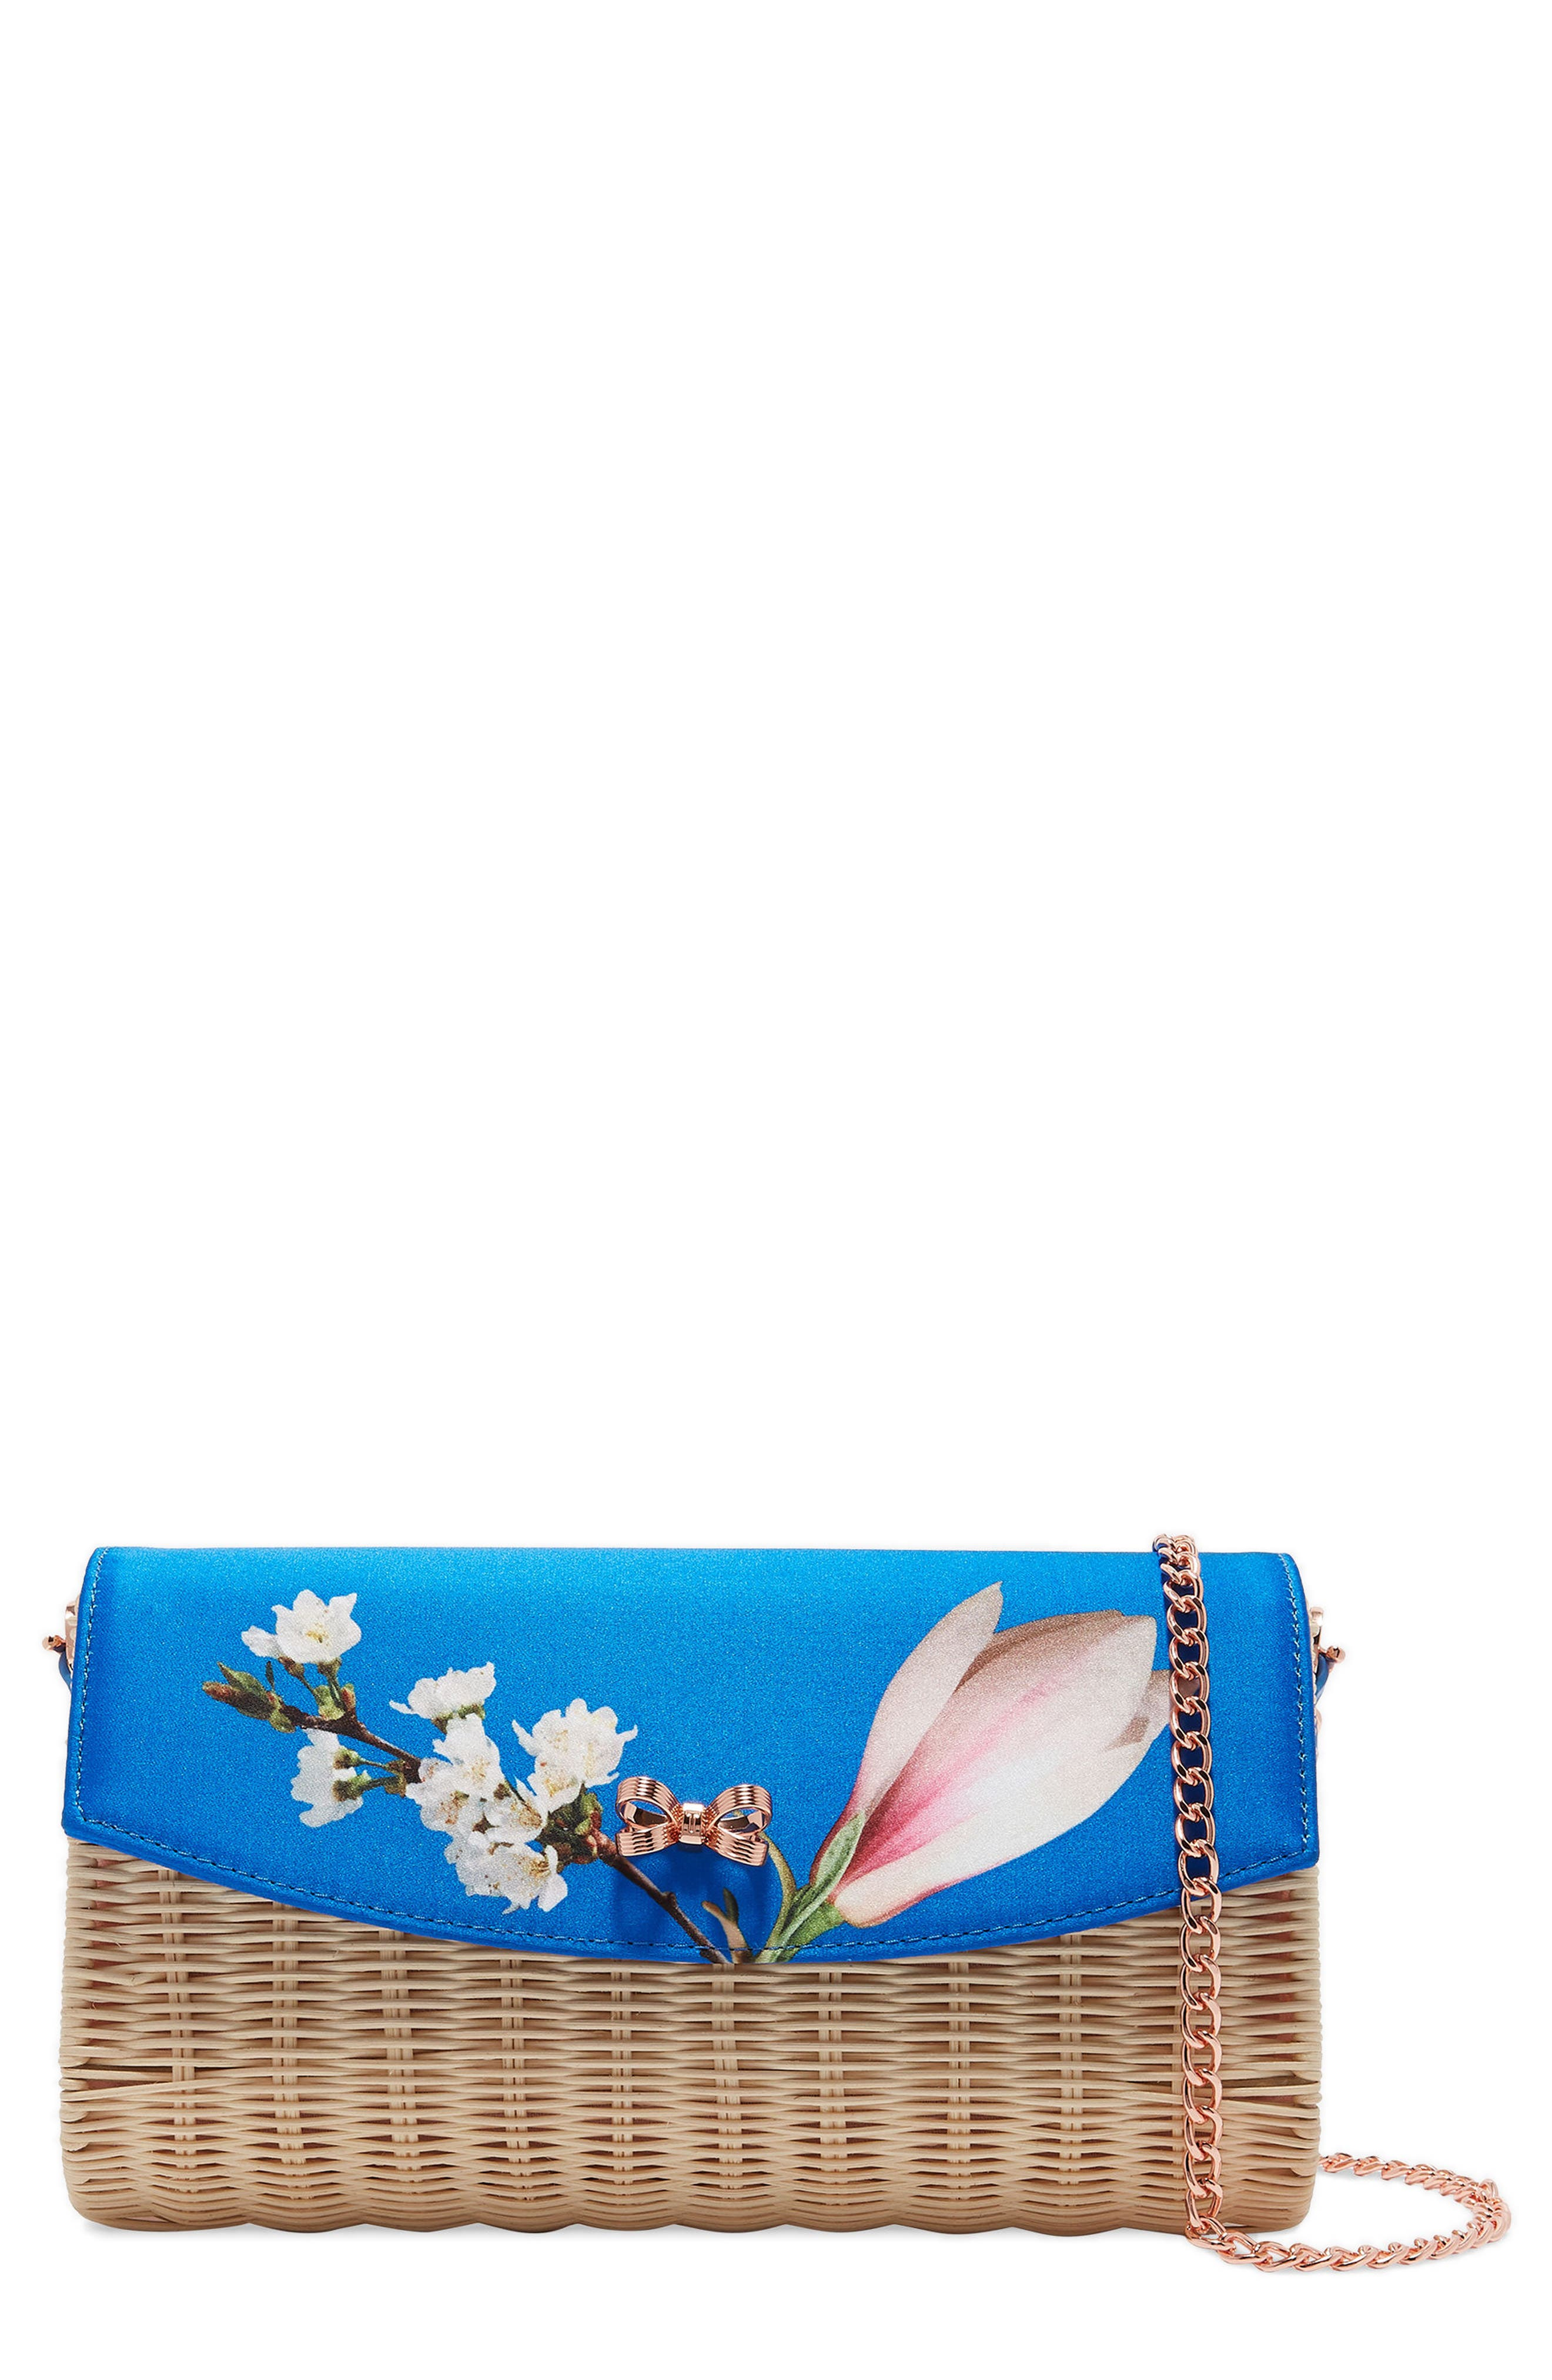 Haarley Harmony Woven Rattan Clutch,                         Main,                         color, Bright Blue